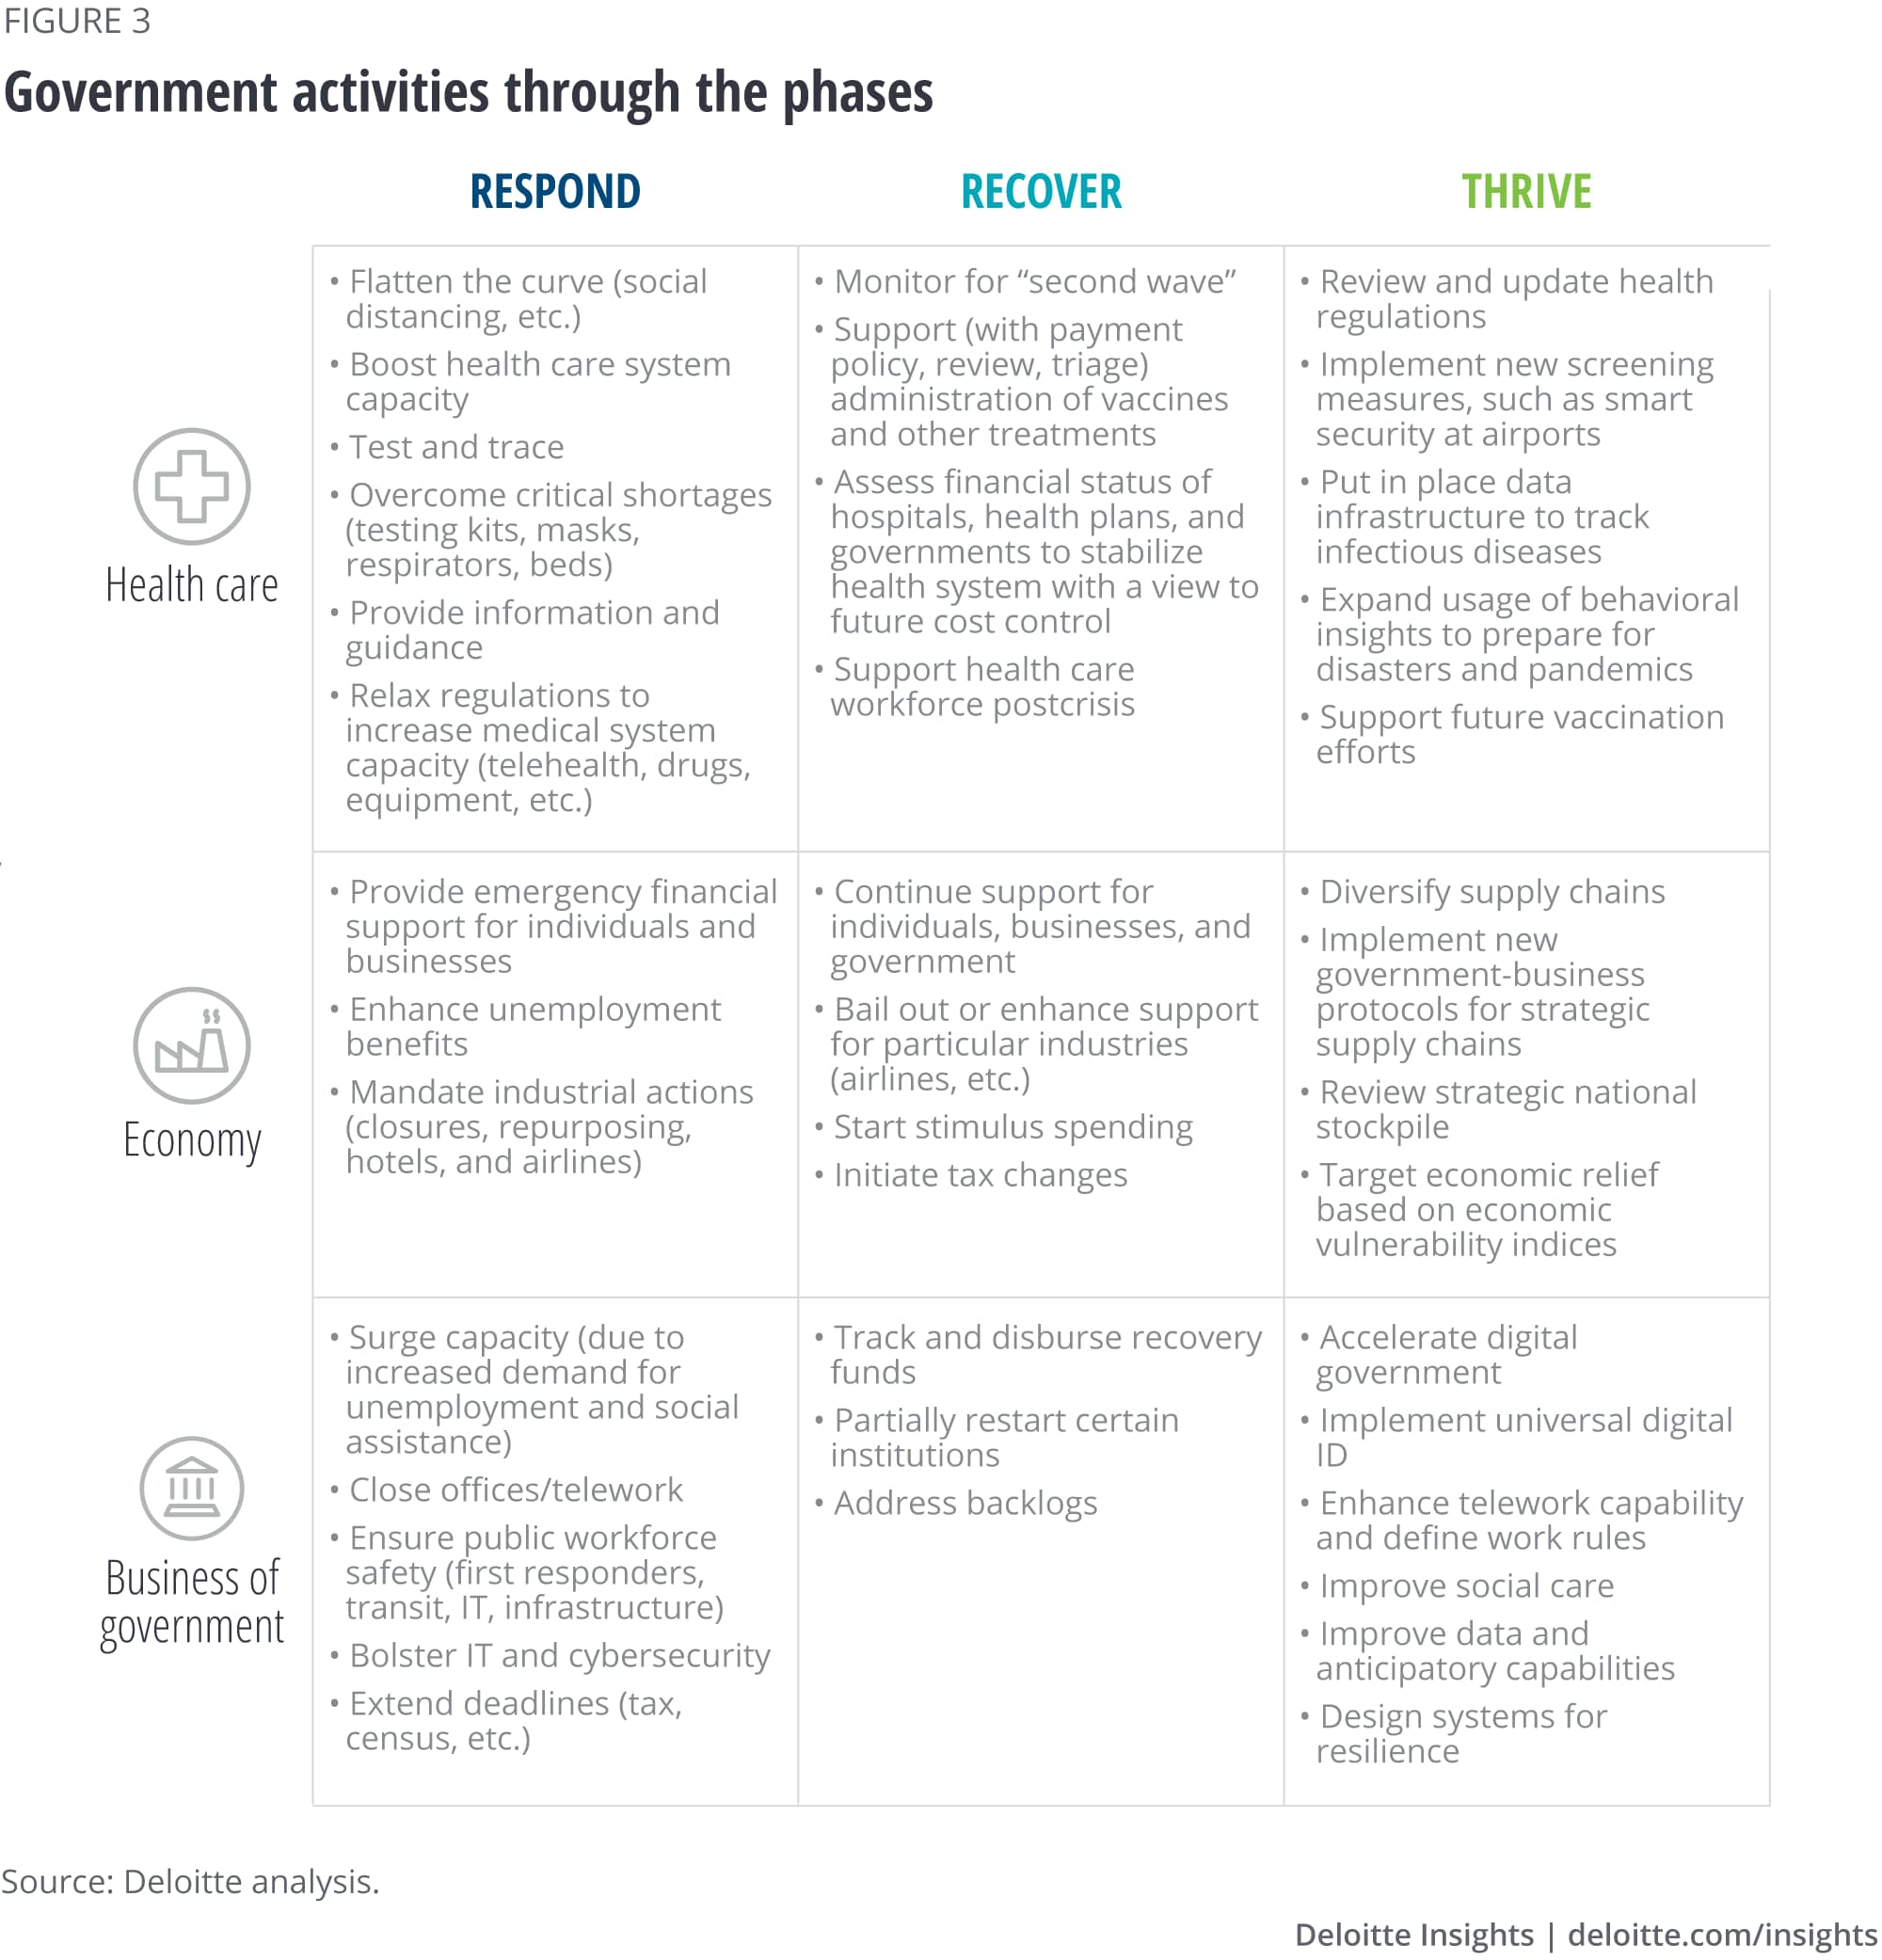 Government activities through the phases